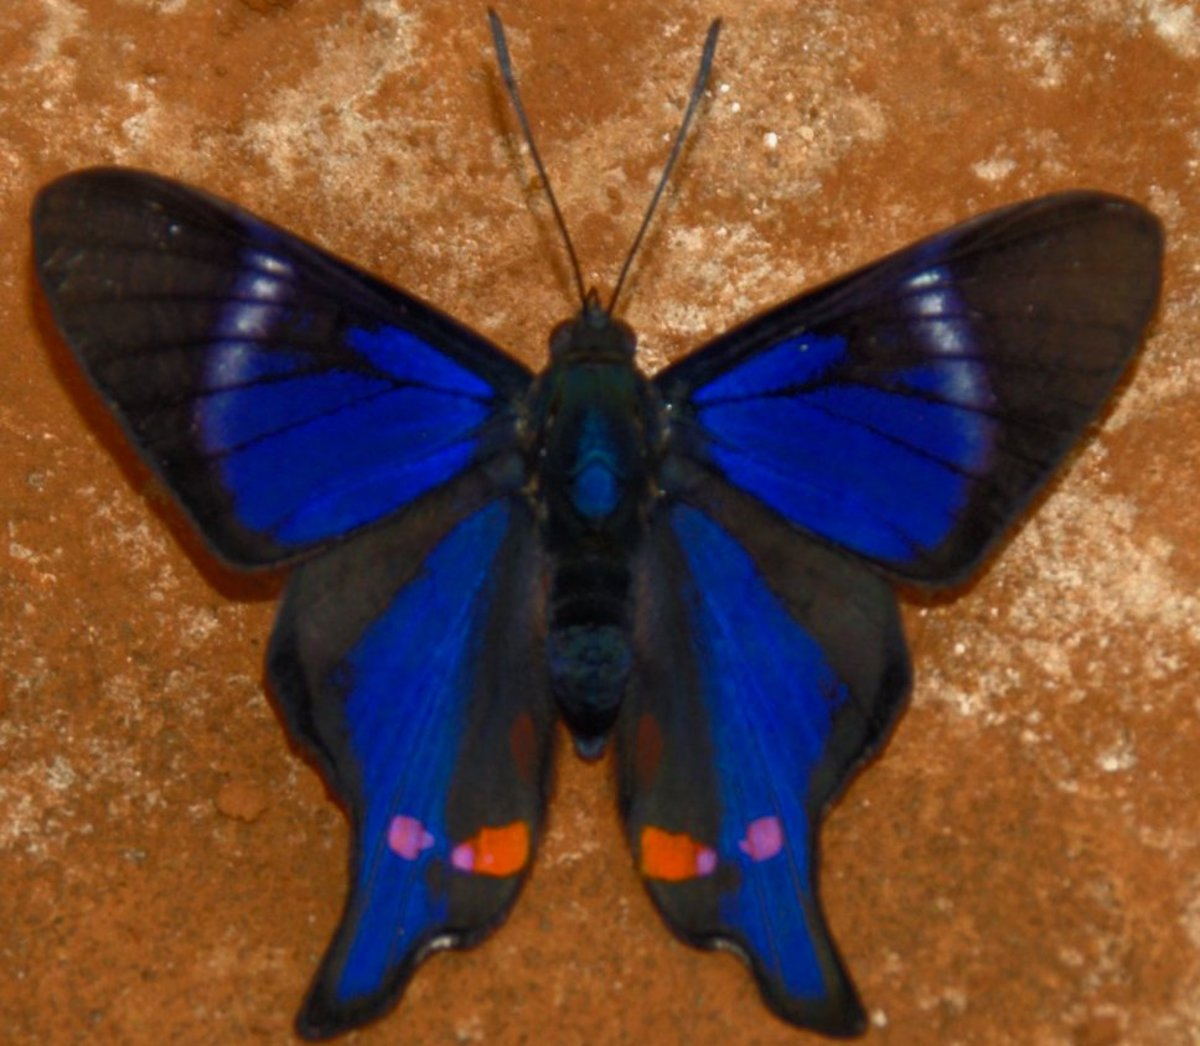 Iridescent Rhetus Butterfly from Brazil